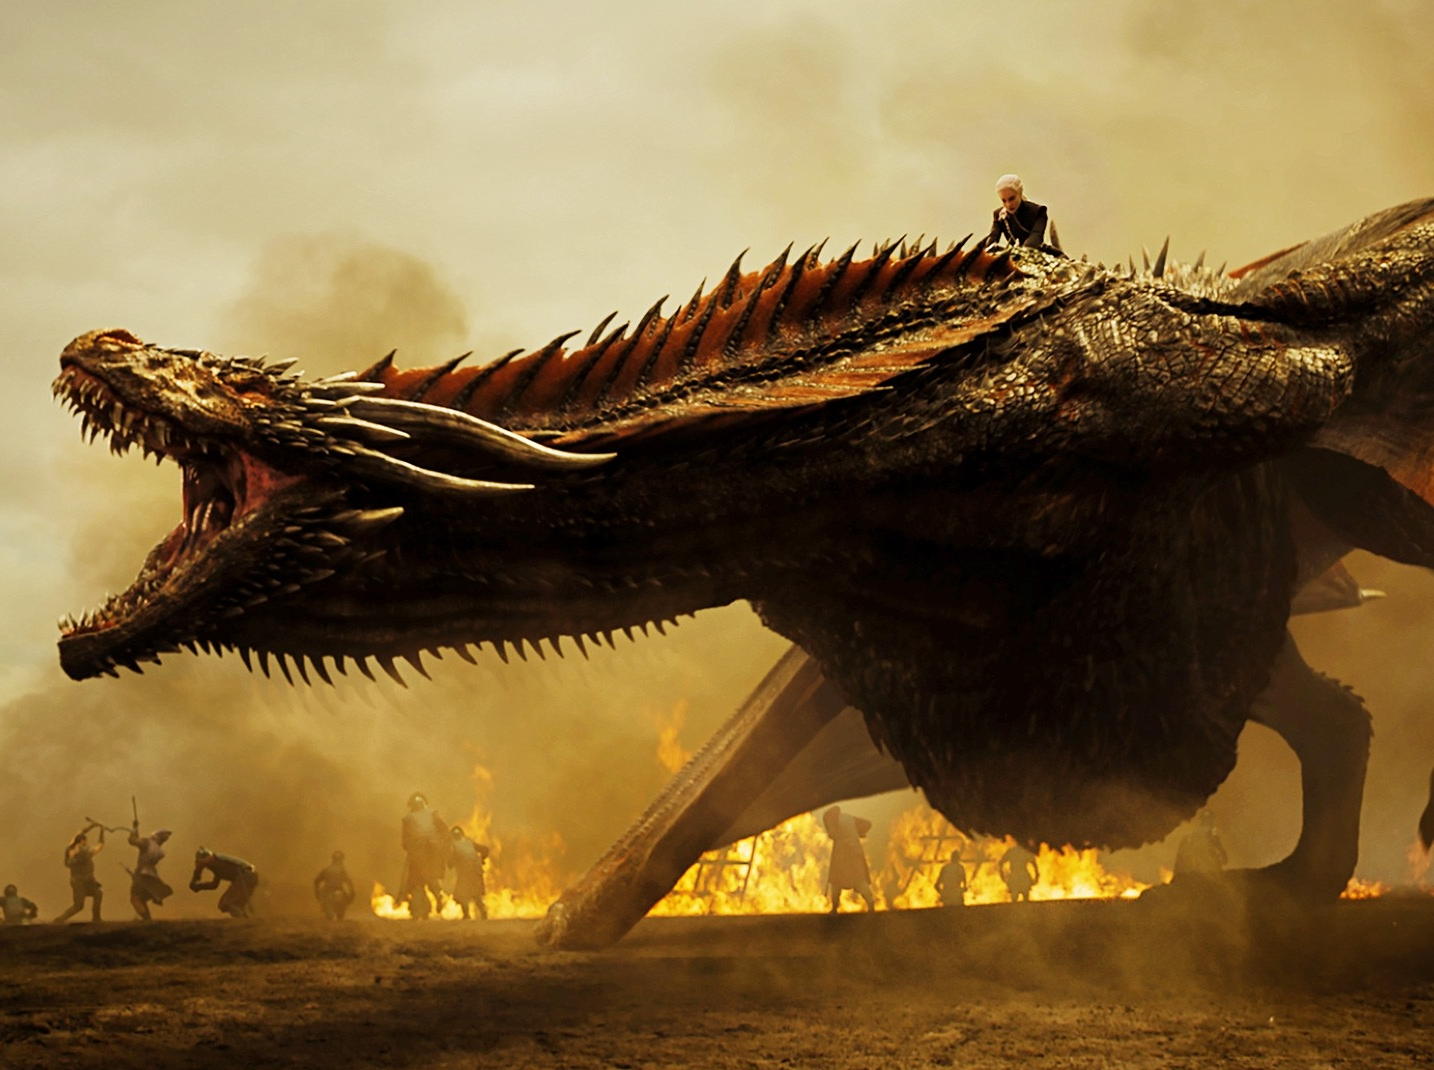 Game Of Thrones Dragons Nuclear Weapons And Winning